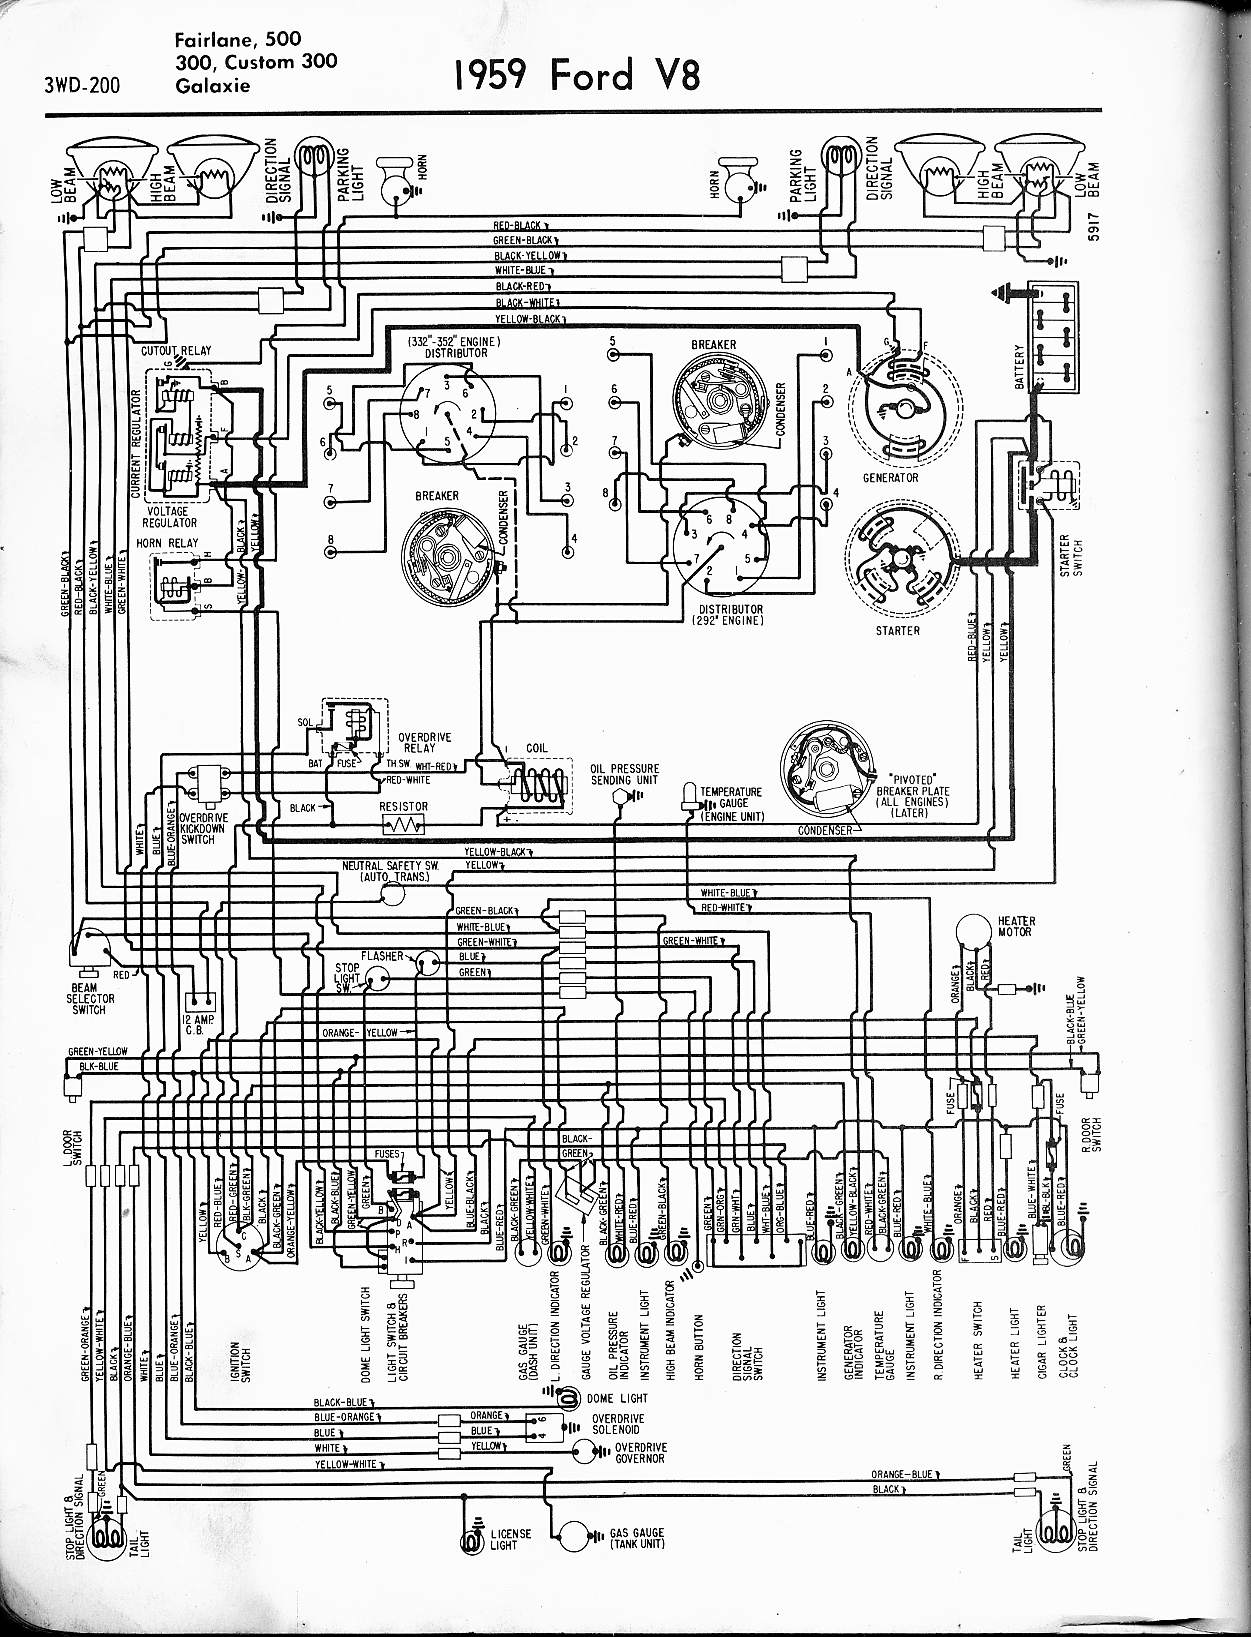 1956 Ford F100 Brake Wiring Library Toyota Alternator Diagram Furthermore 85 Pickup 1959 V8 Fairlane 500 300 Custom